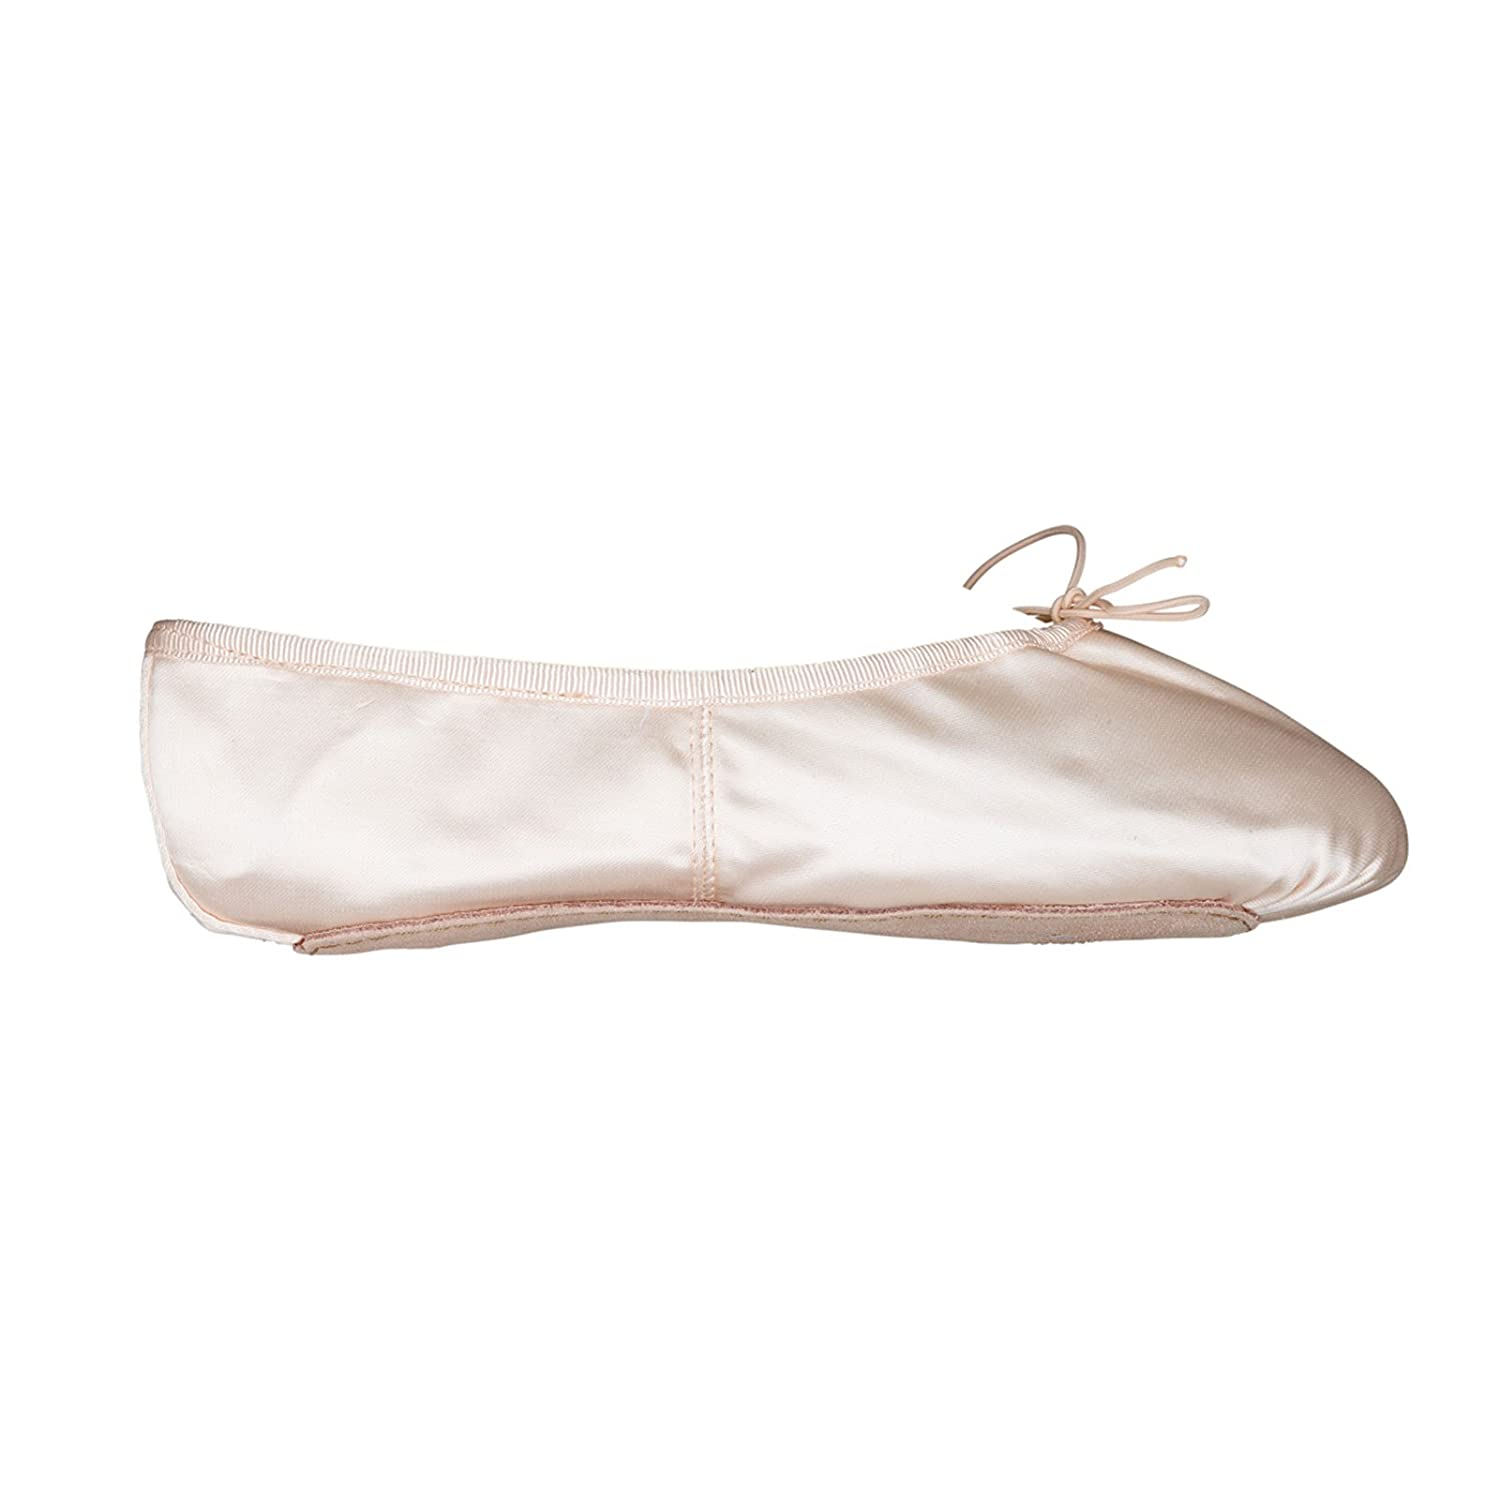 Capezio Pink Satin Daisy Ballet Shoe Full Sole Medium Fit Amazoncouk  Shoes  Bags